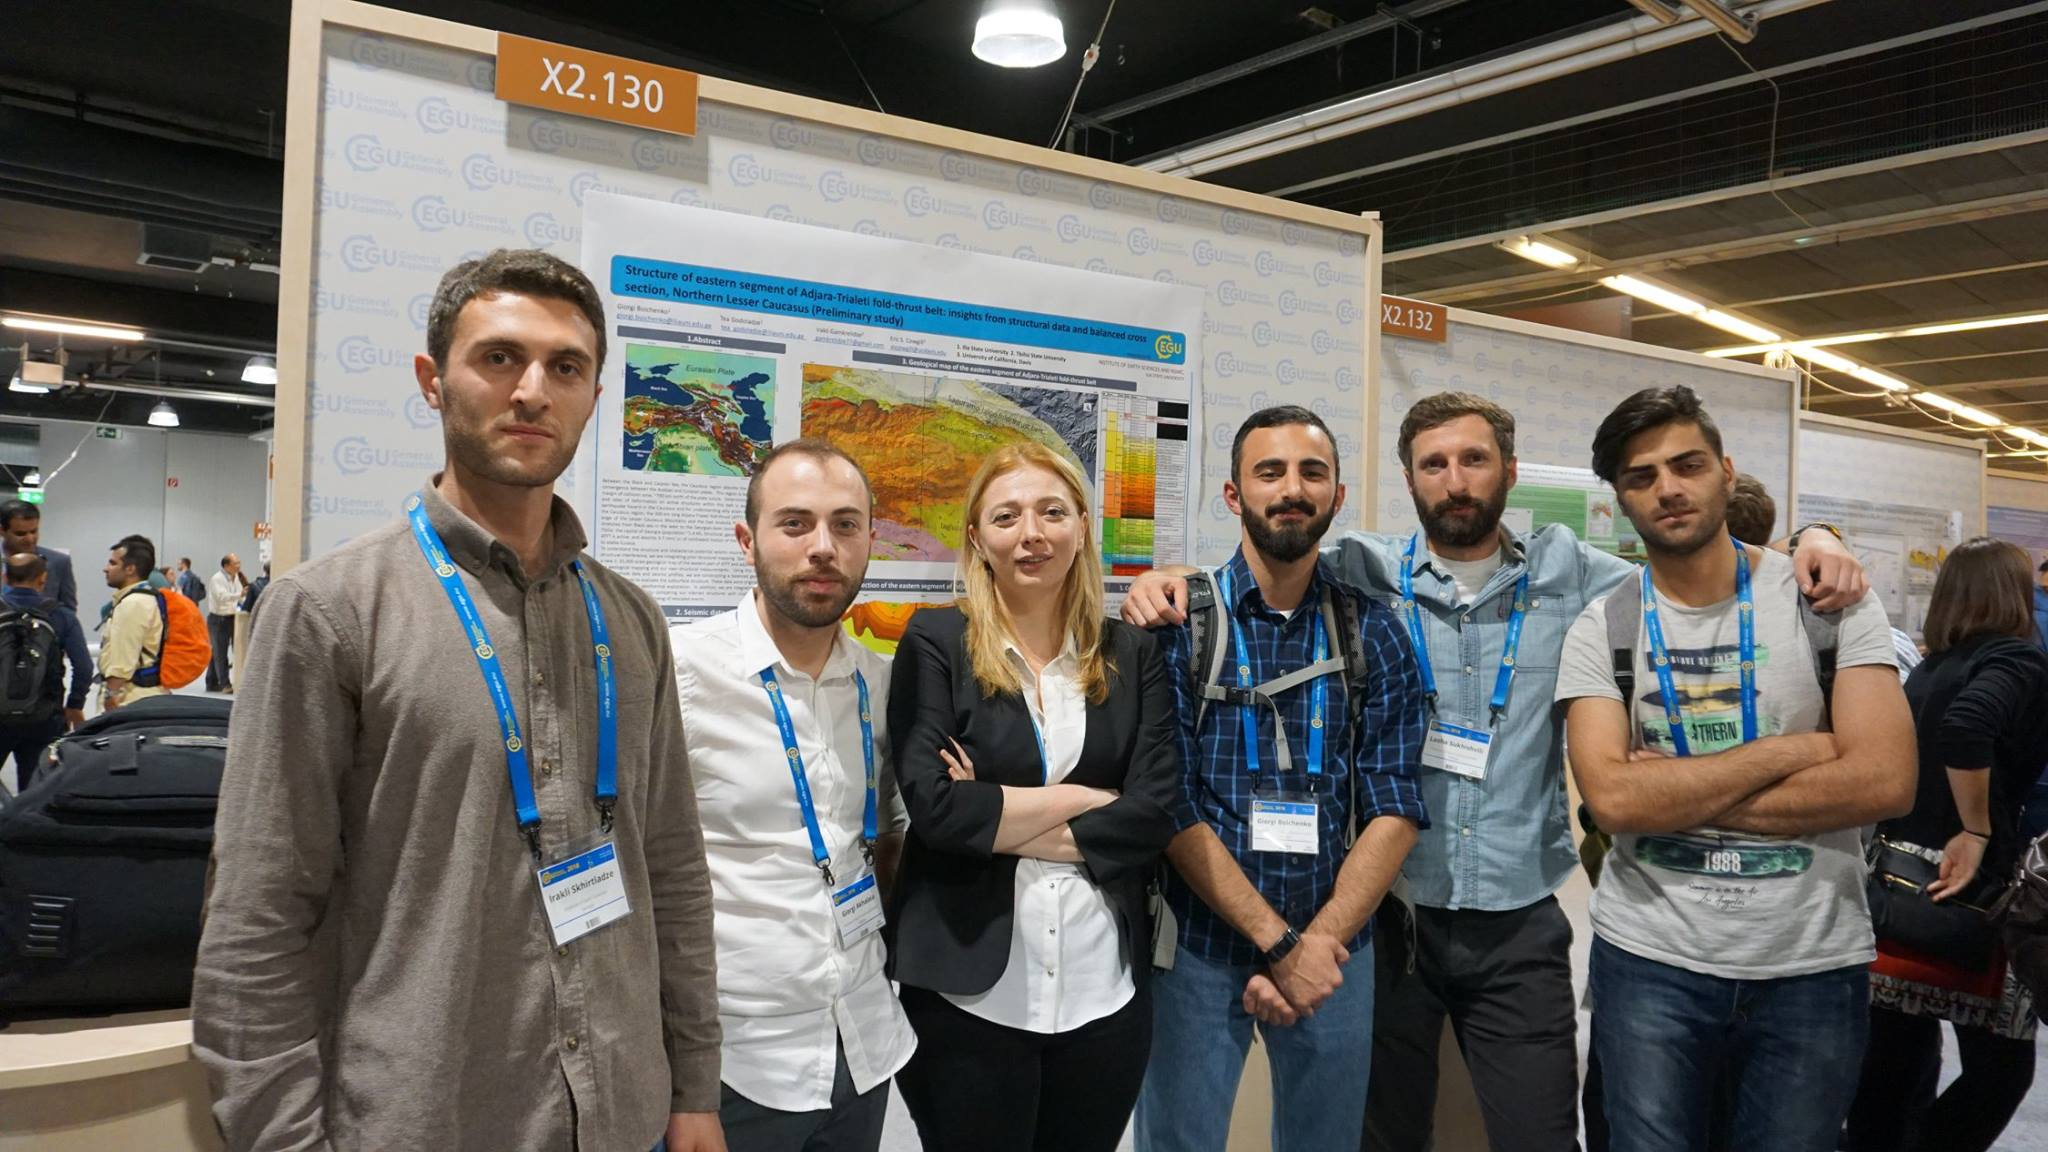 EGU- EUROPEAN GEOSCIENCES UNION GENERAL ASSEMBLY 2018